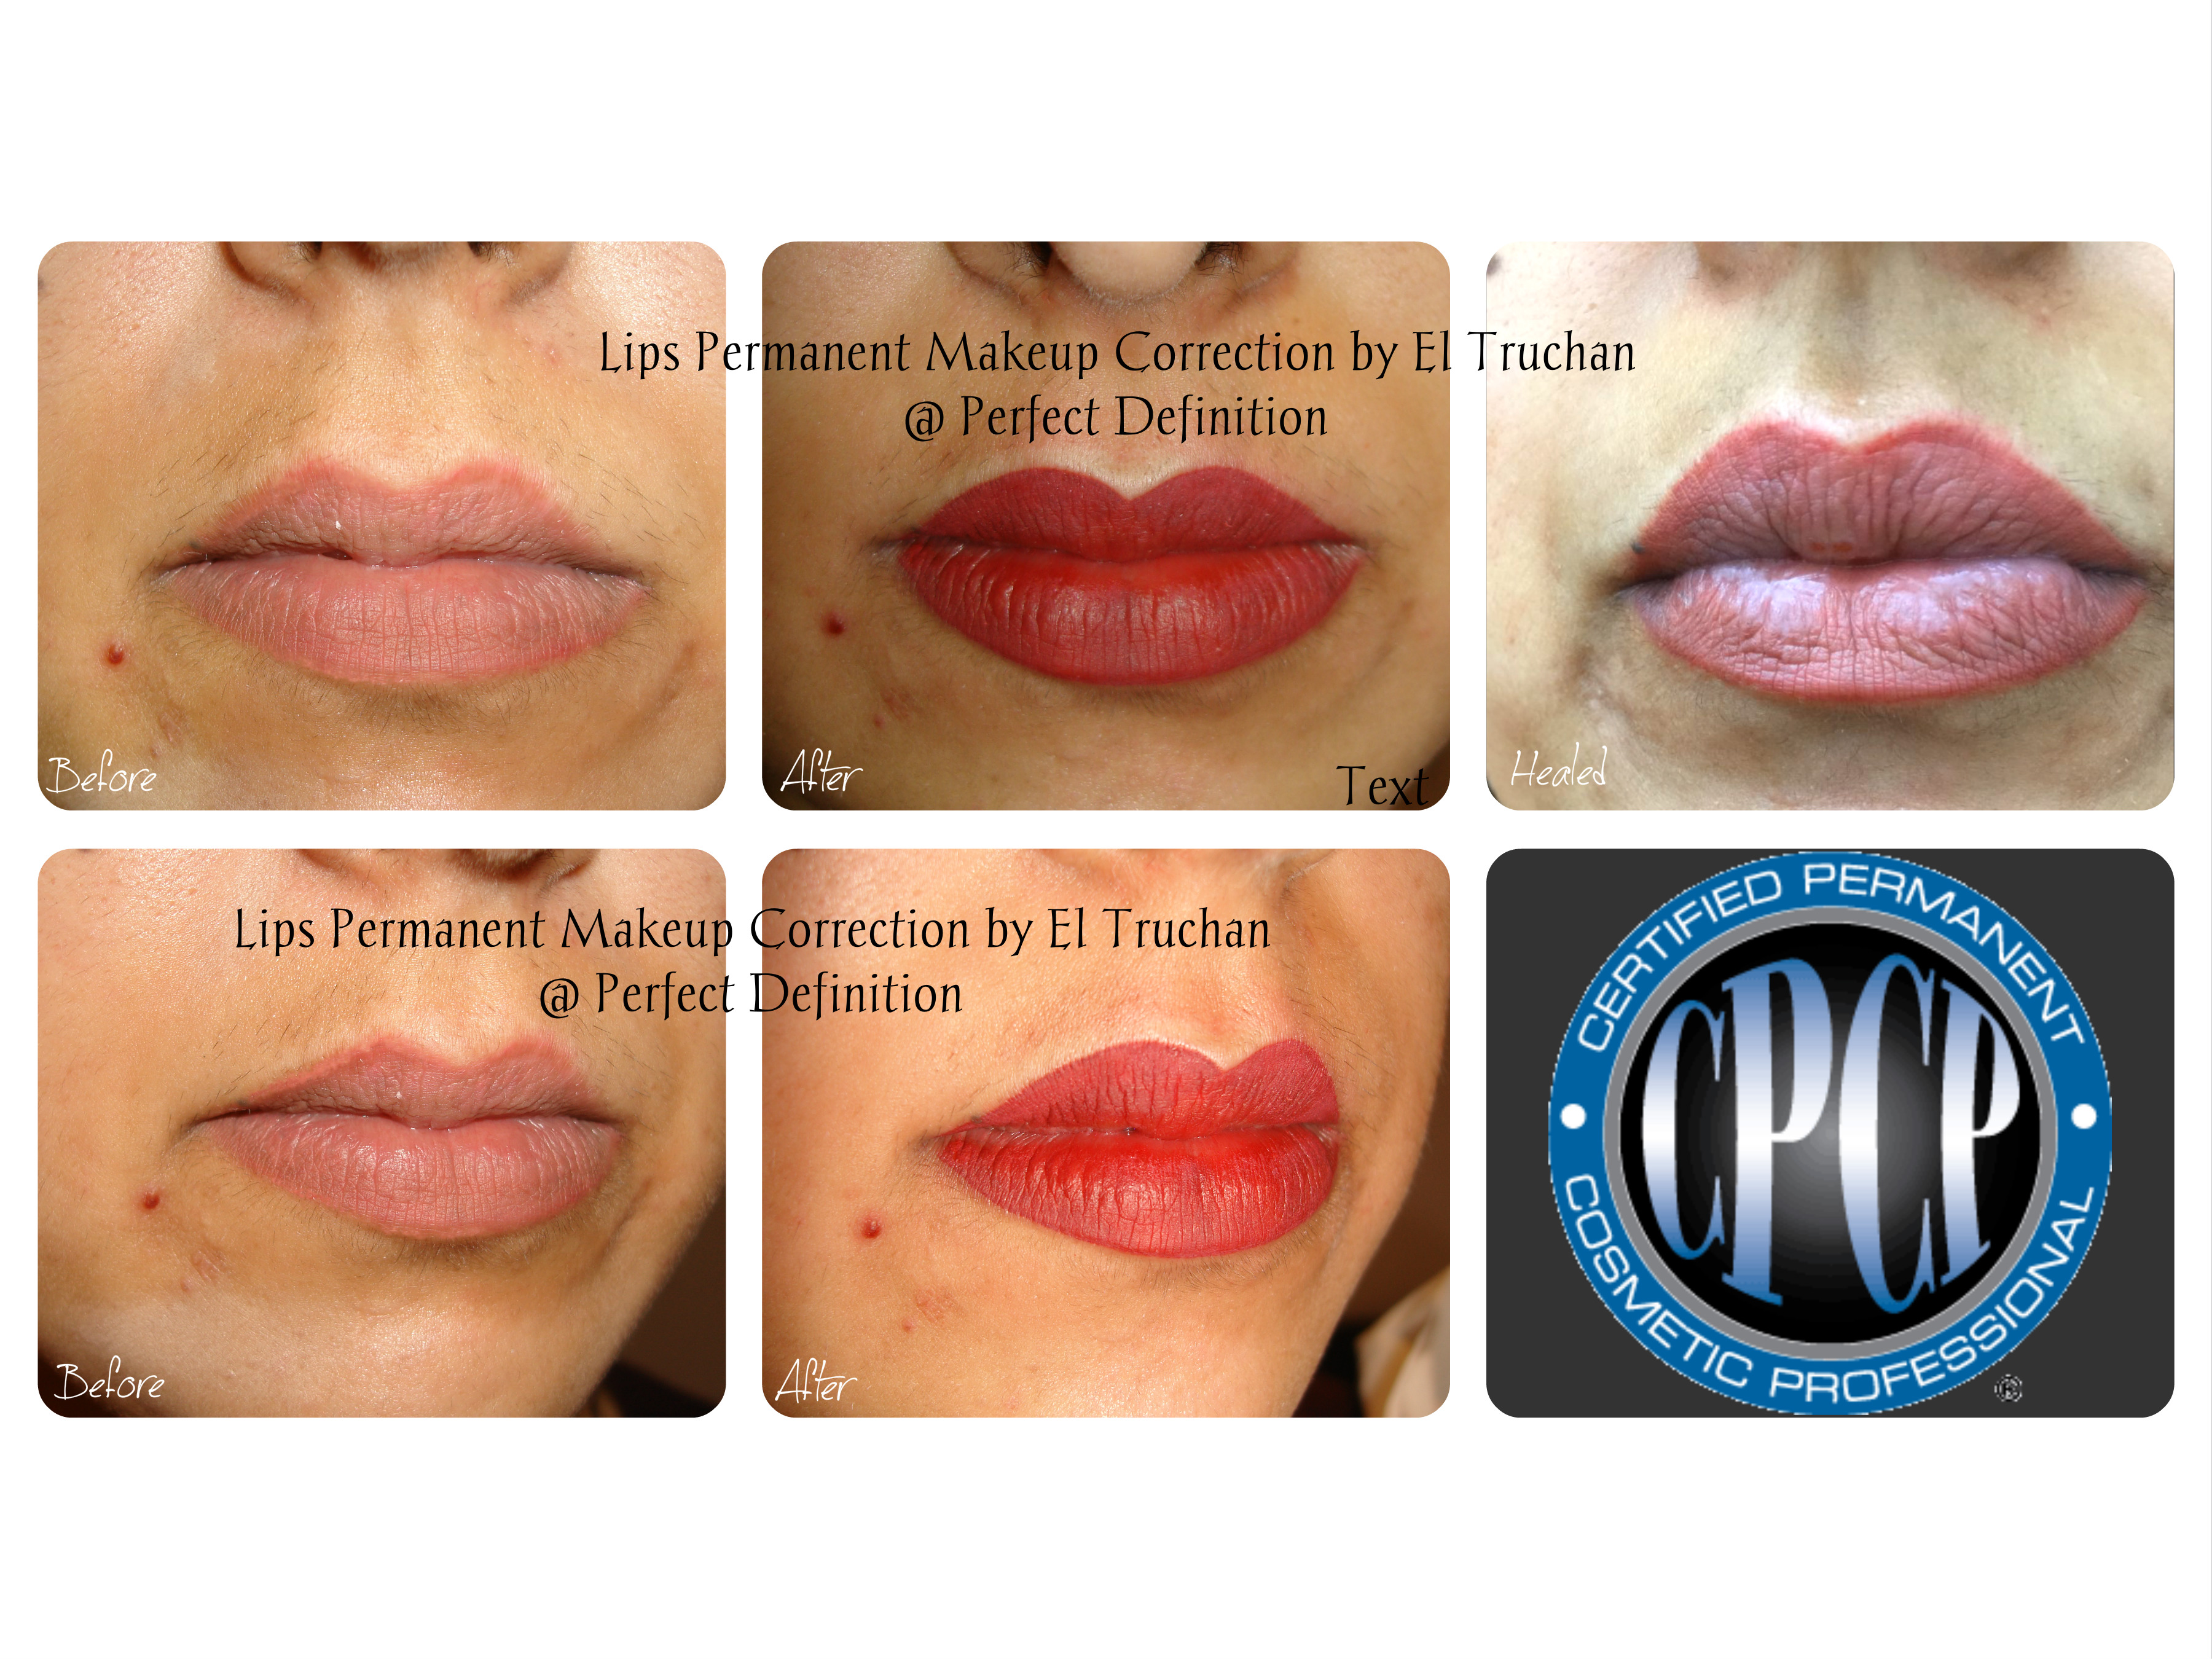 Correction of Lips permanent makeup by El Truchan _ Perfect Definition in London